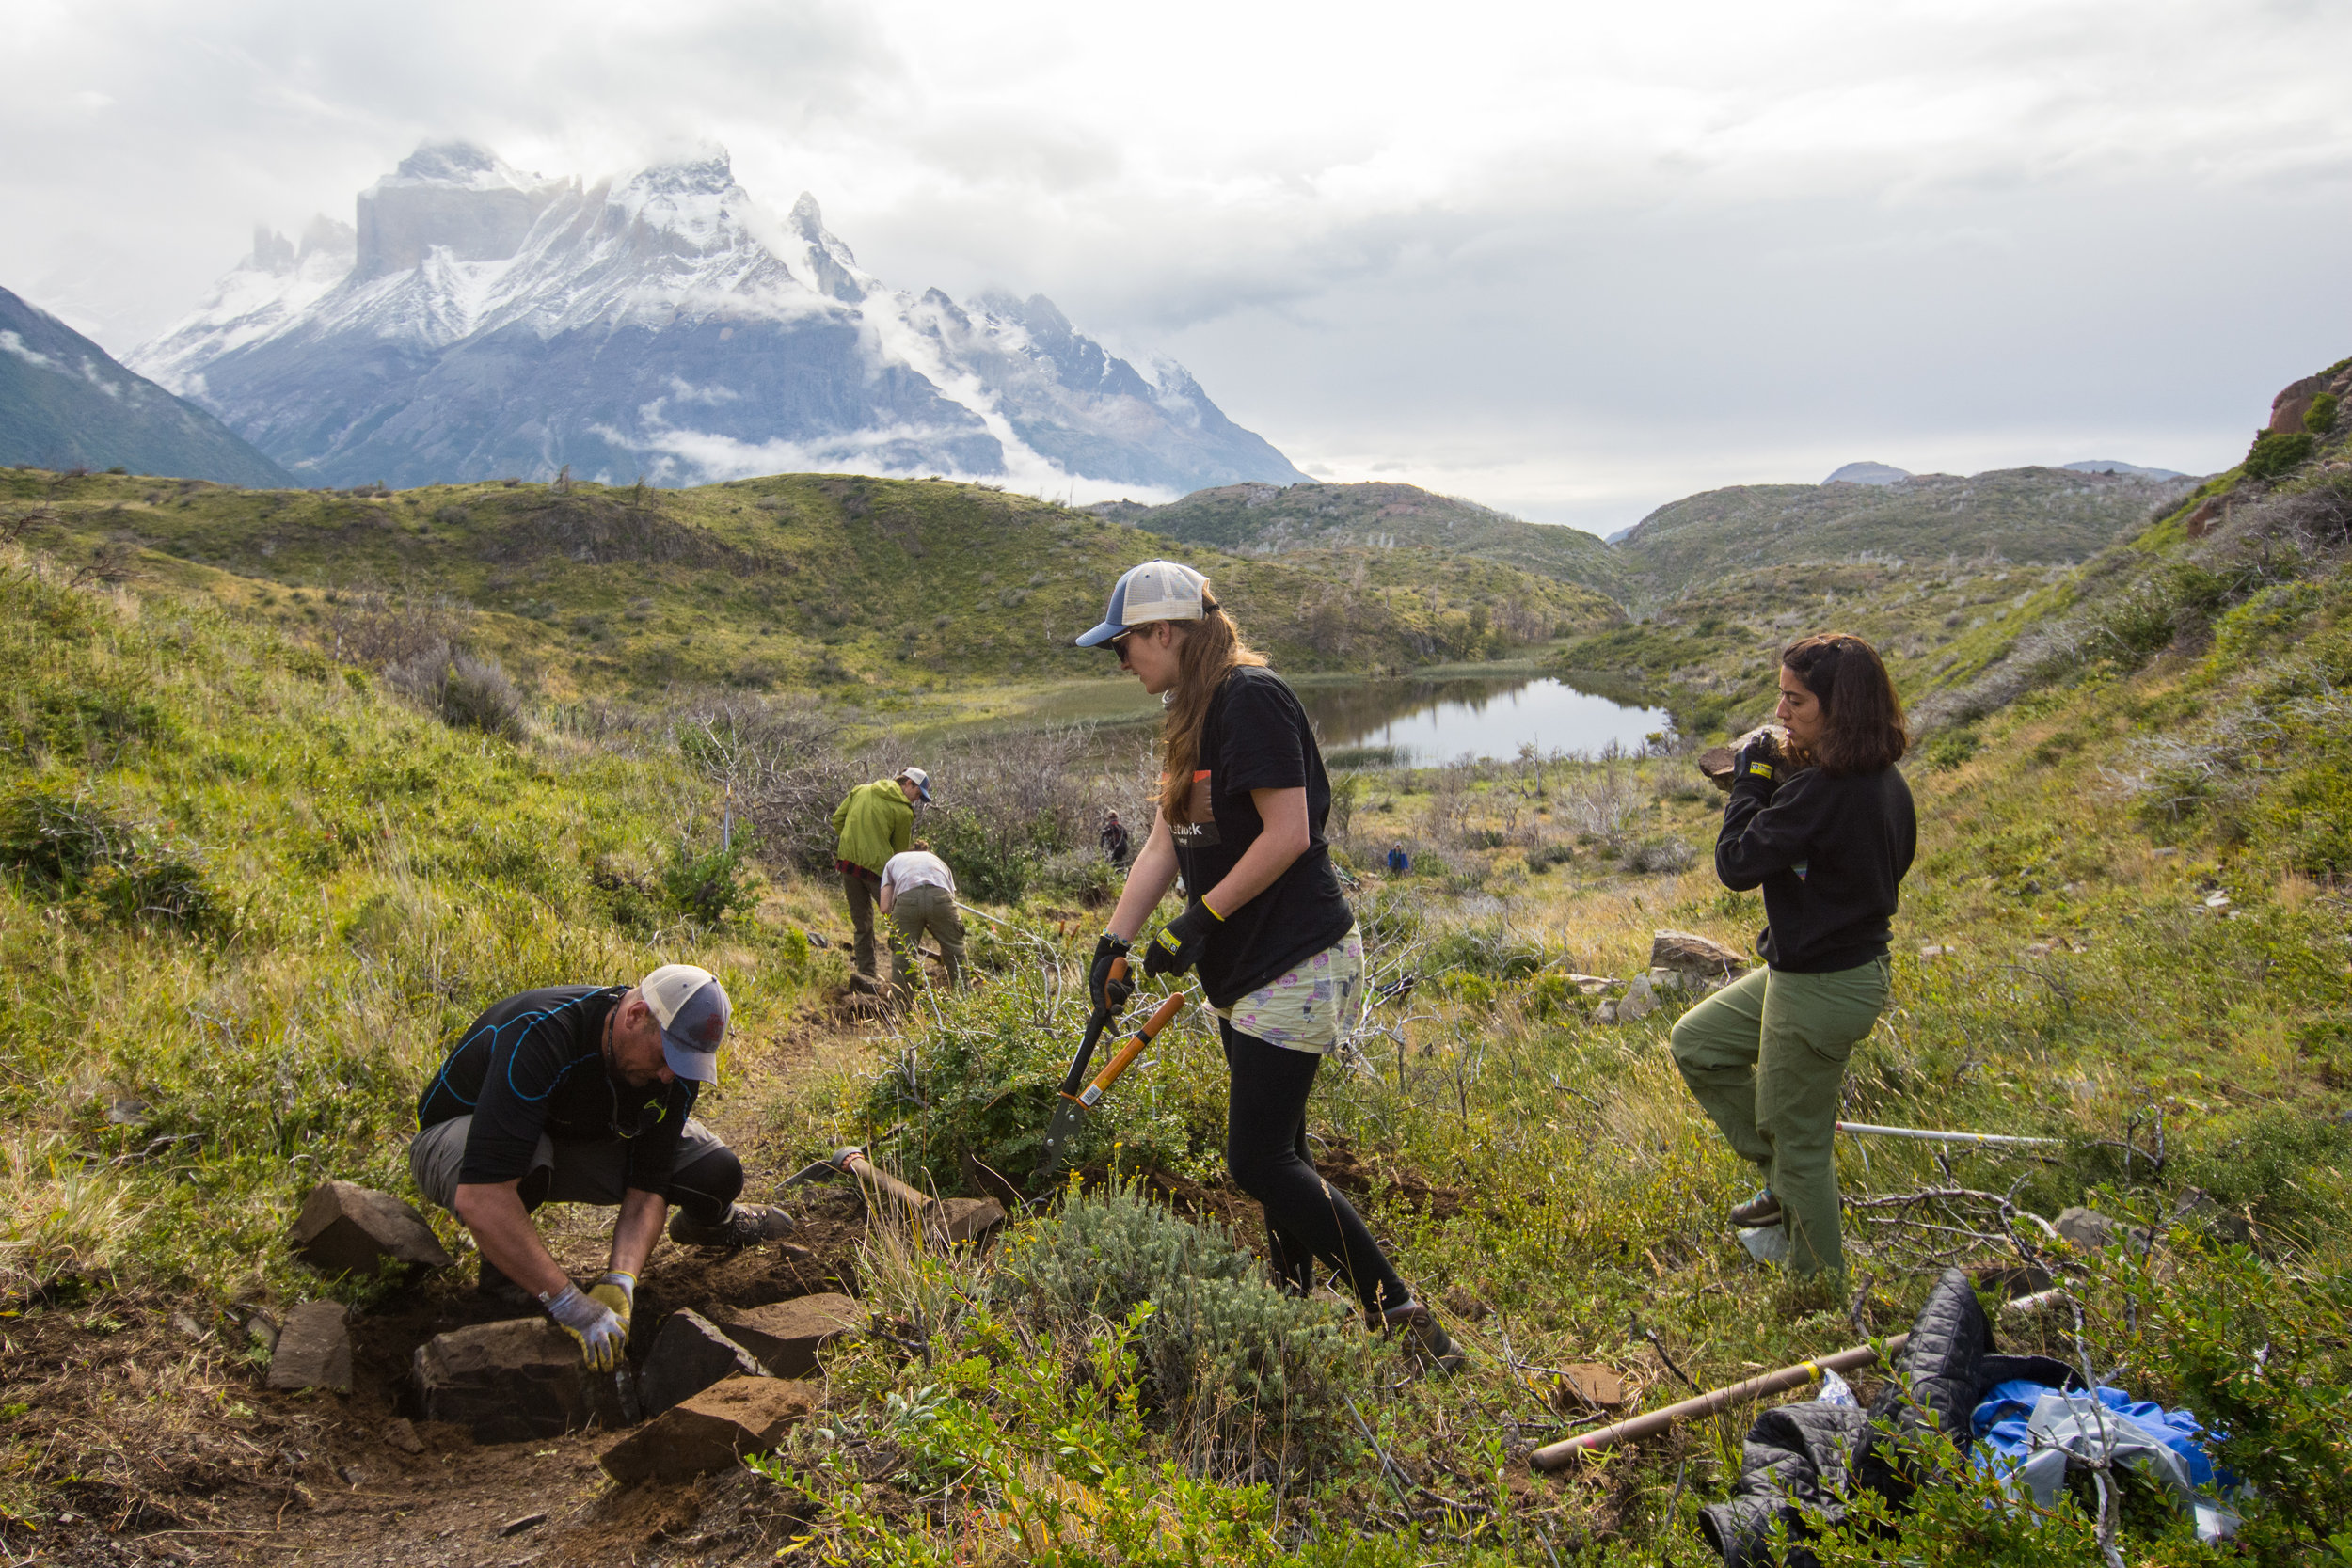 Legacy Fund volunteers construct water bars on a new trail to control erosion. Photo: Timothy Dhalleine